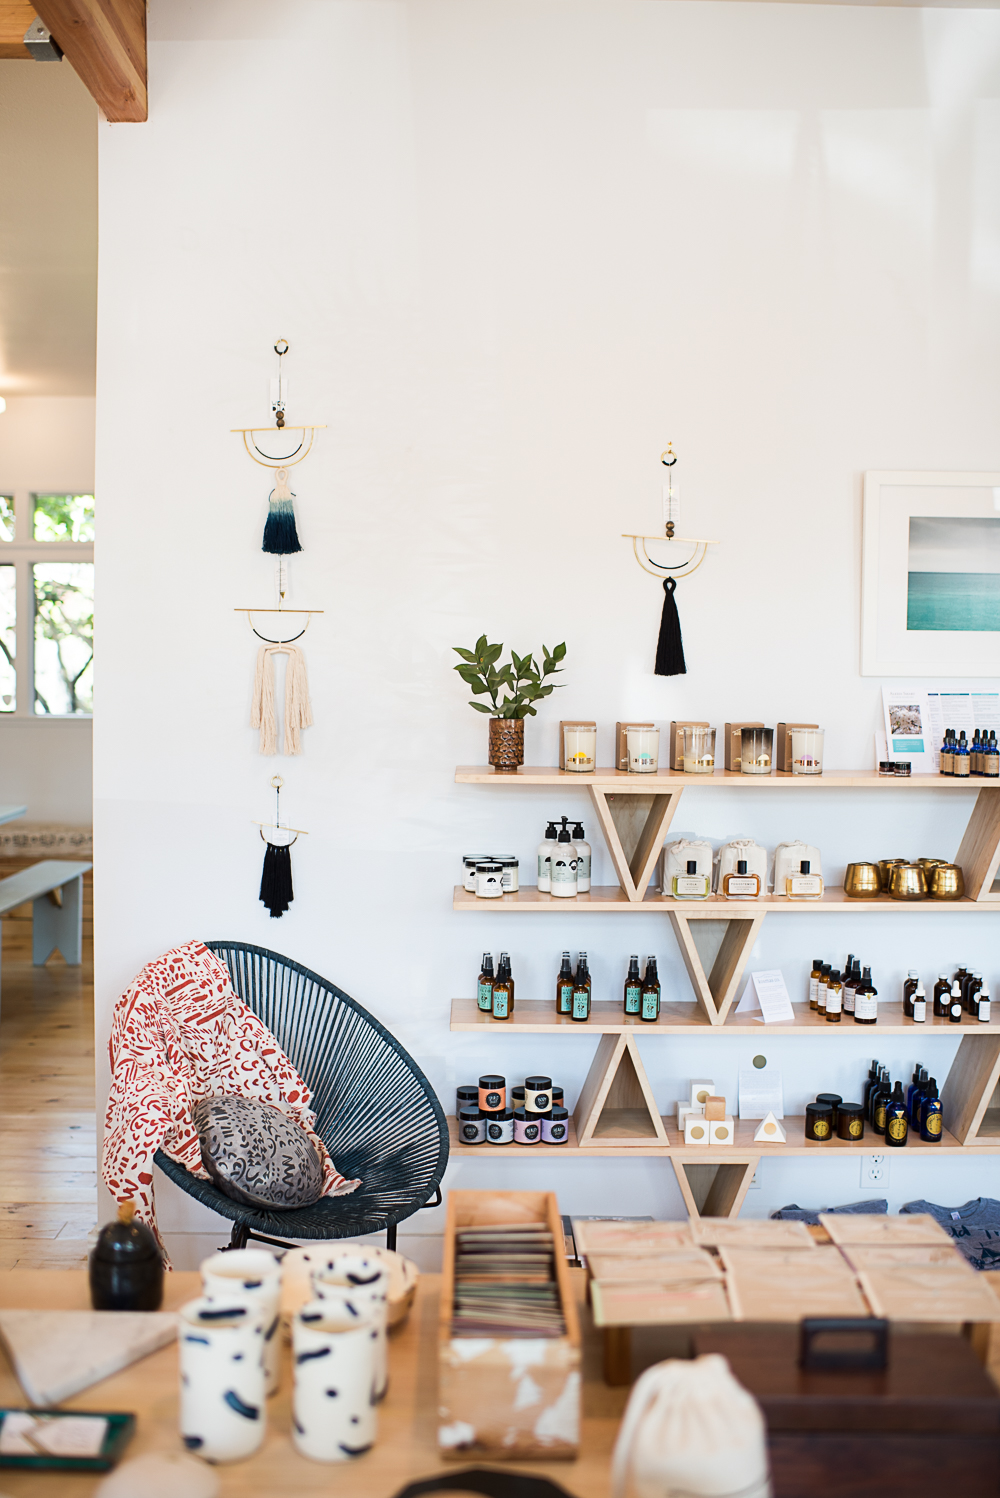 MY TOP 5 FAVORITE DESIGN SHOPS IN PORTLAND, OREGON